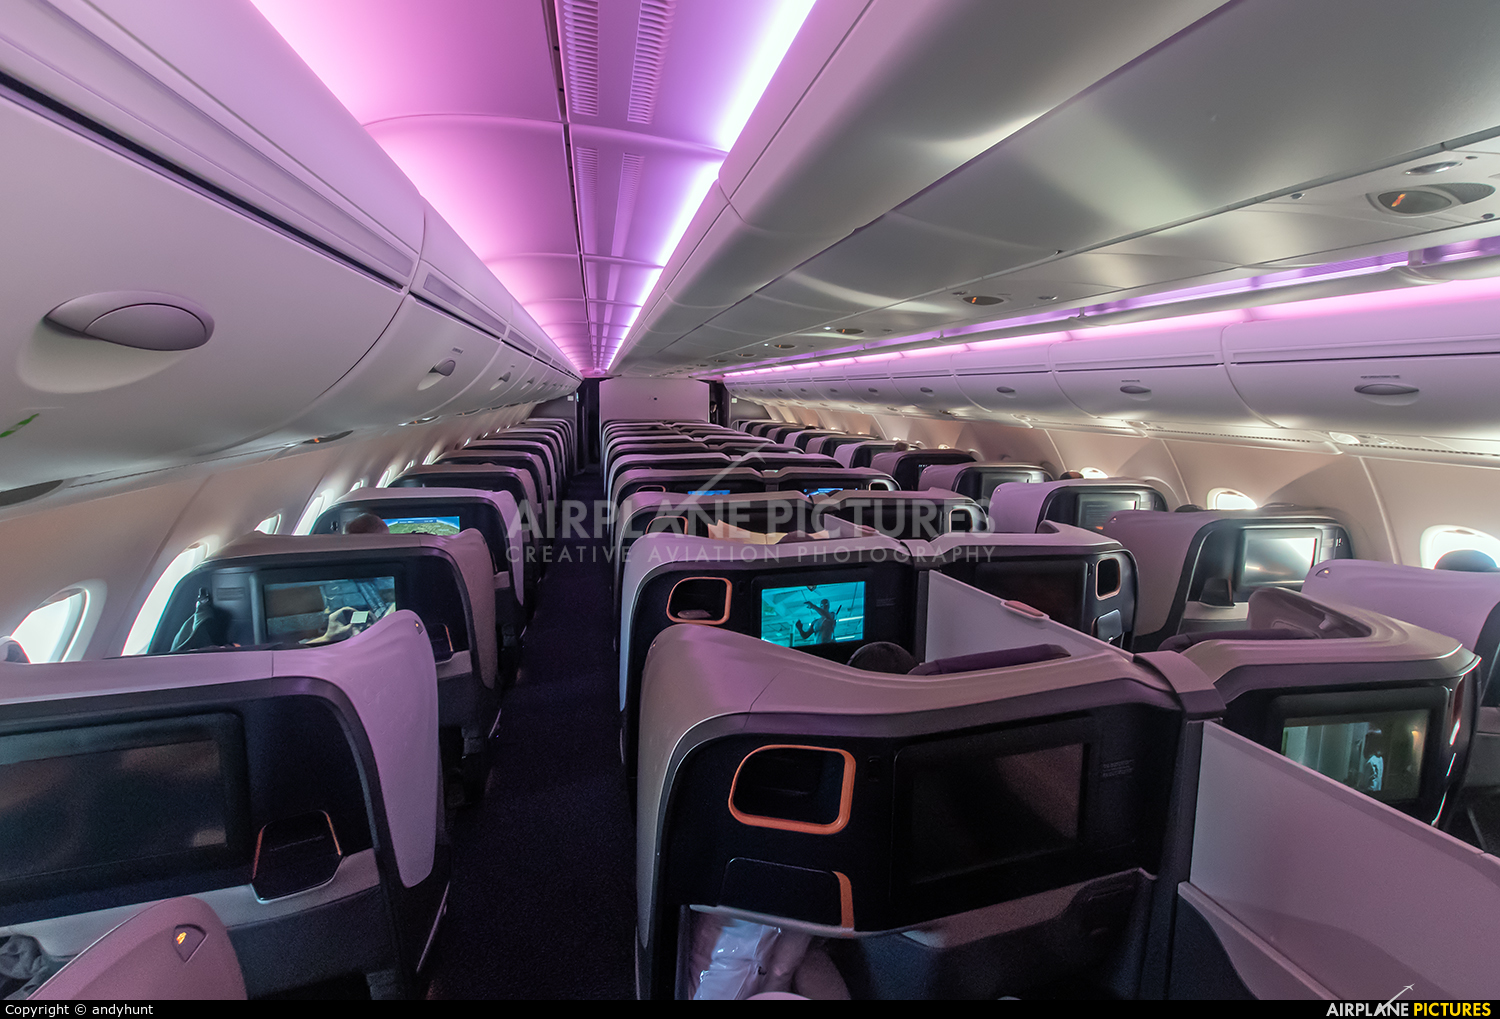 Singapore Airlines 9V-SKY aircraft at In Flight - International